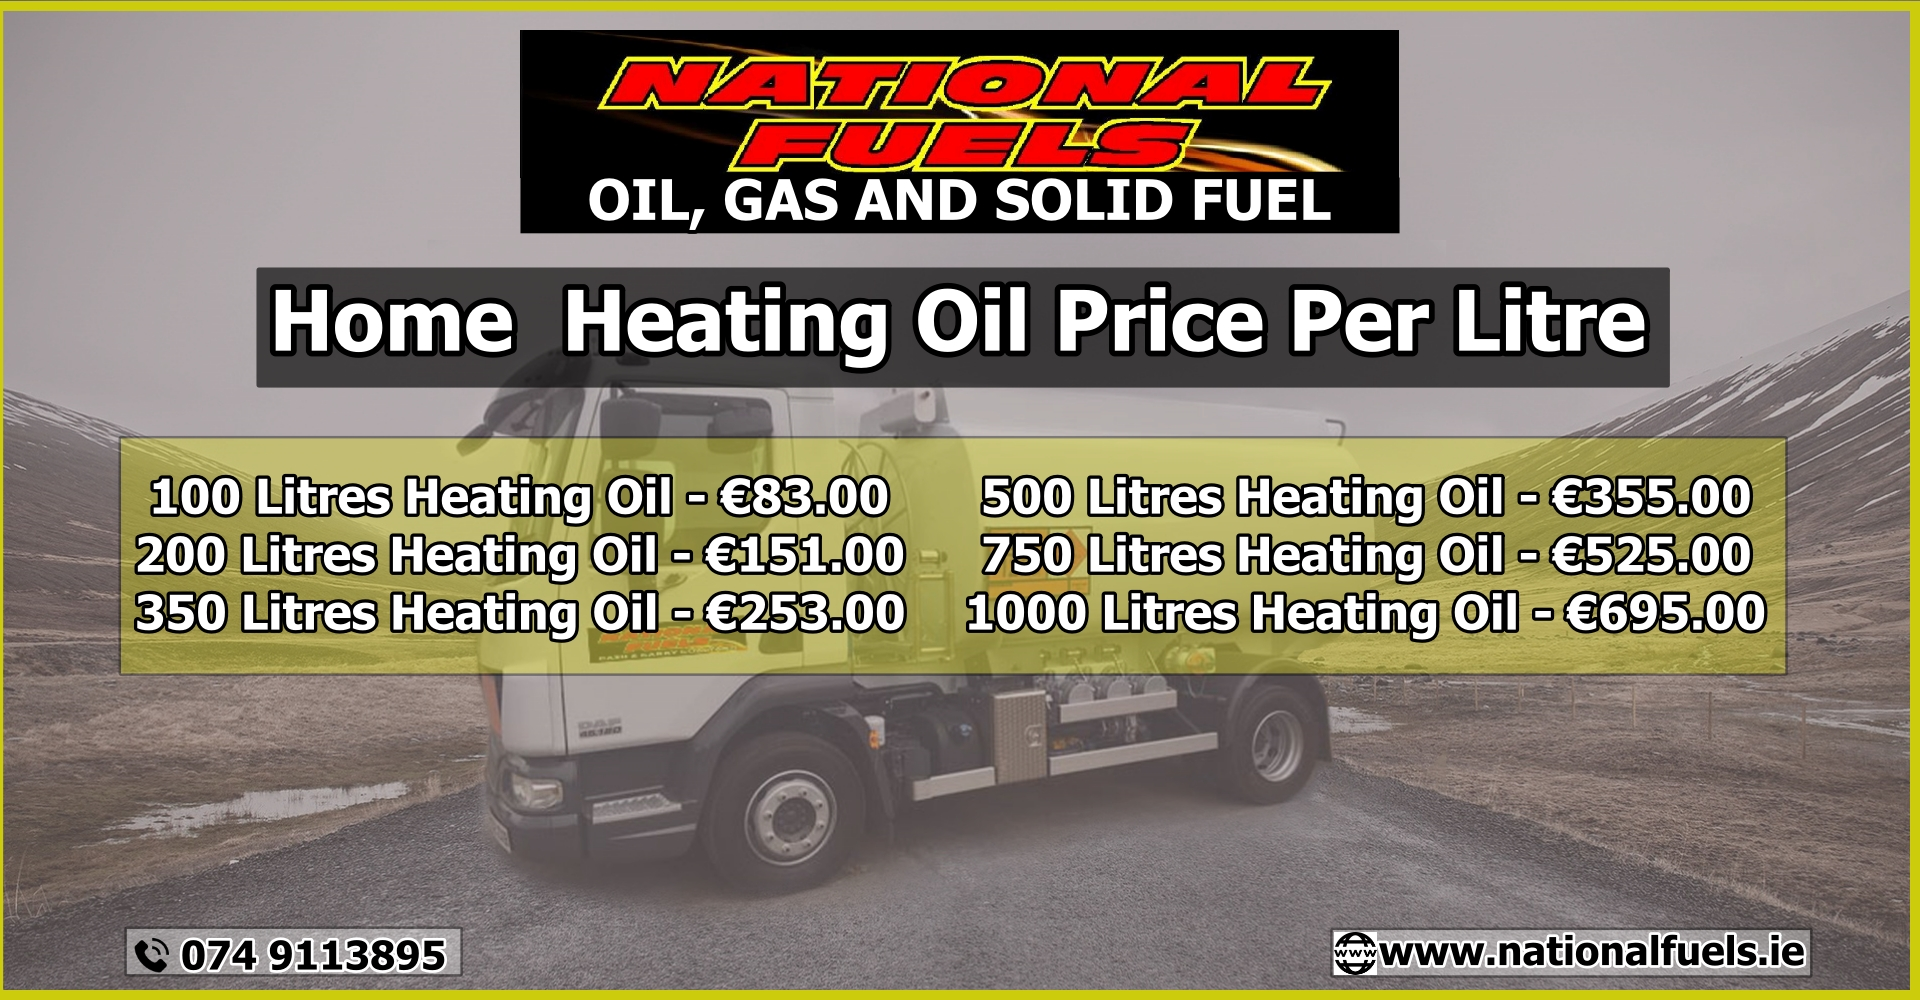 national fuels may.jpg